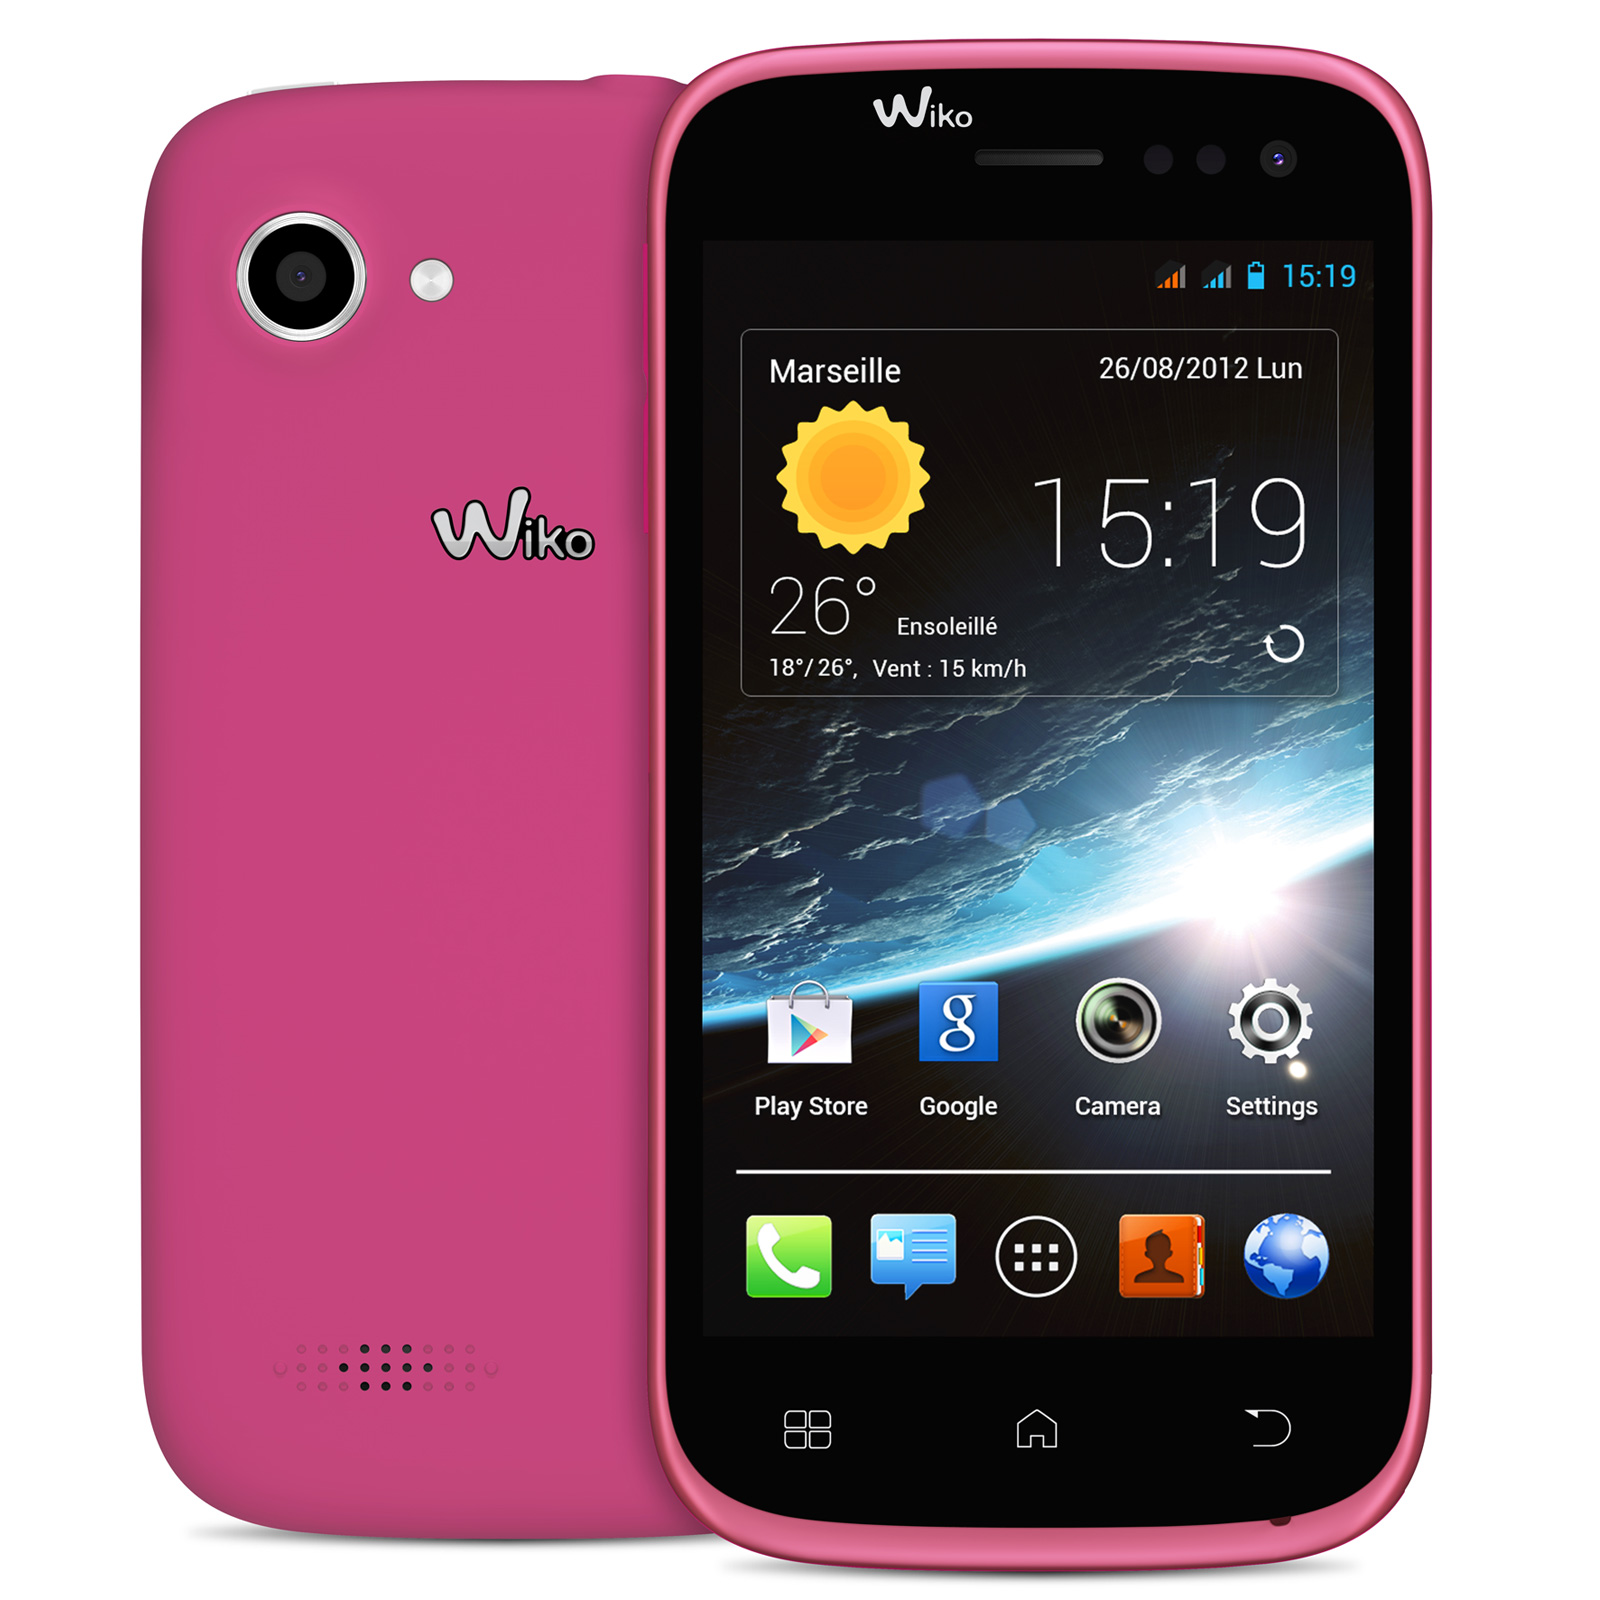 wiko cink slim 2 rose mobile smartphone wiko sur. Black Bedroom Furniture Sets. Home Design Ideas